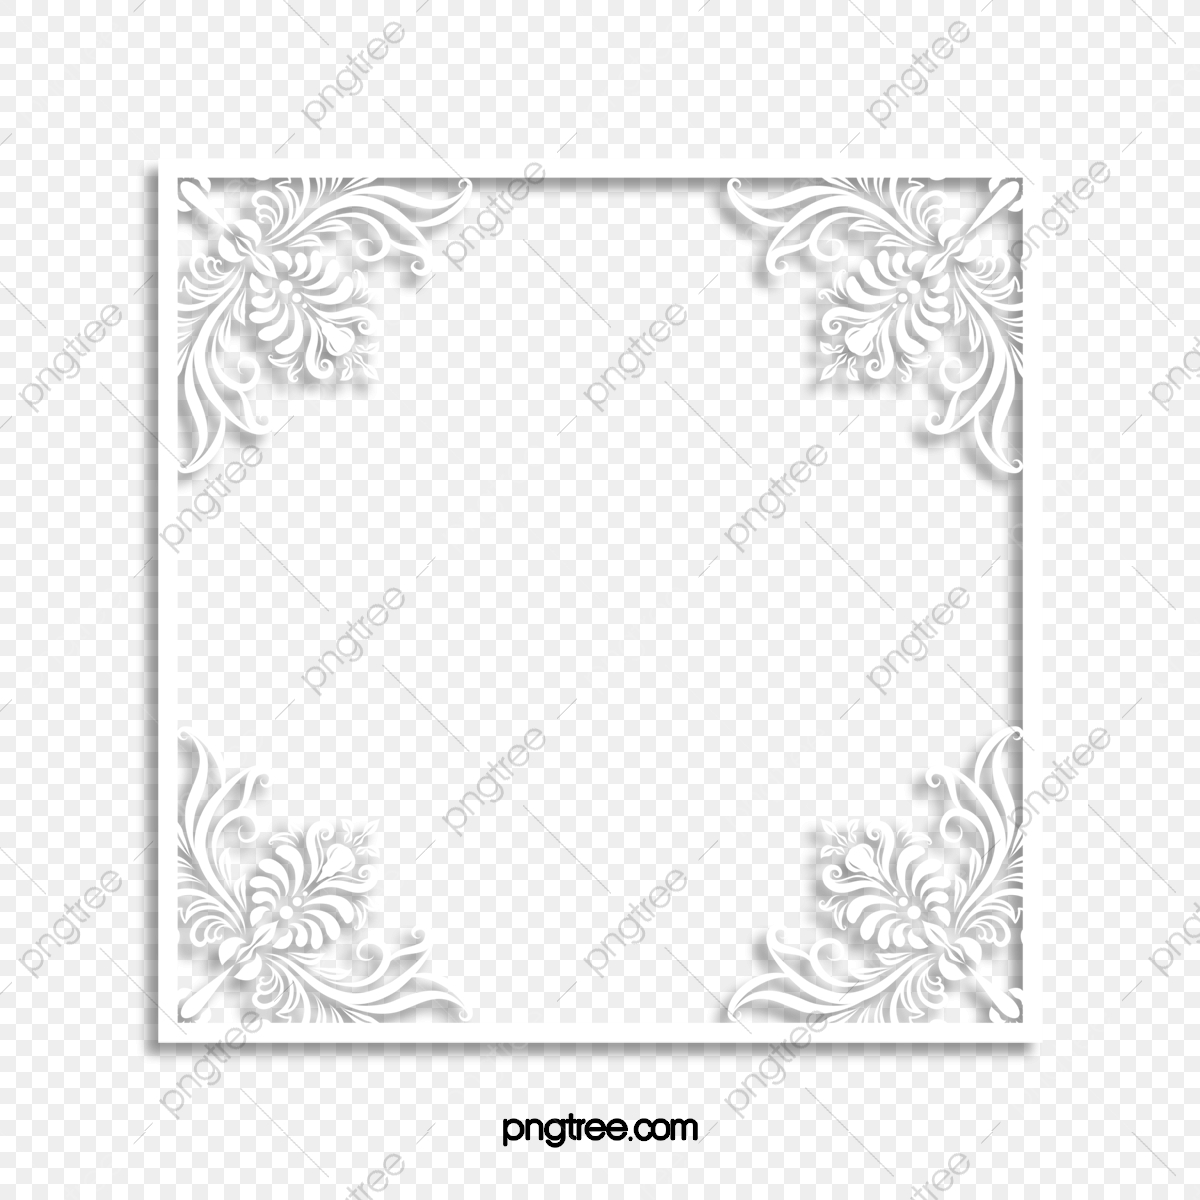 Wedding Frame Png Images Vector And Psd Files Free Download On Pngtree